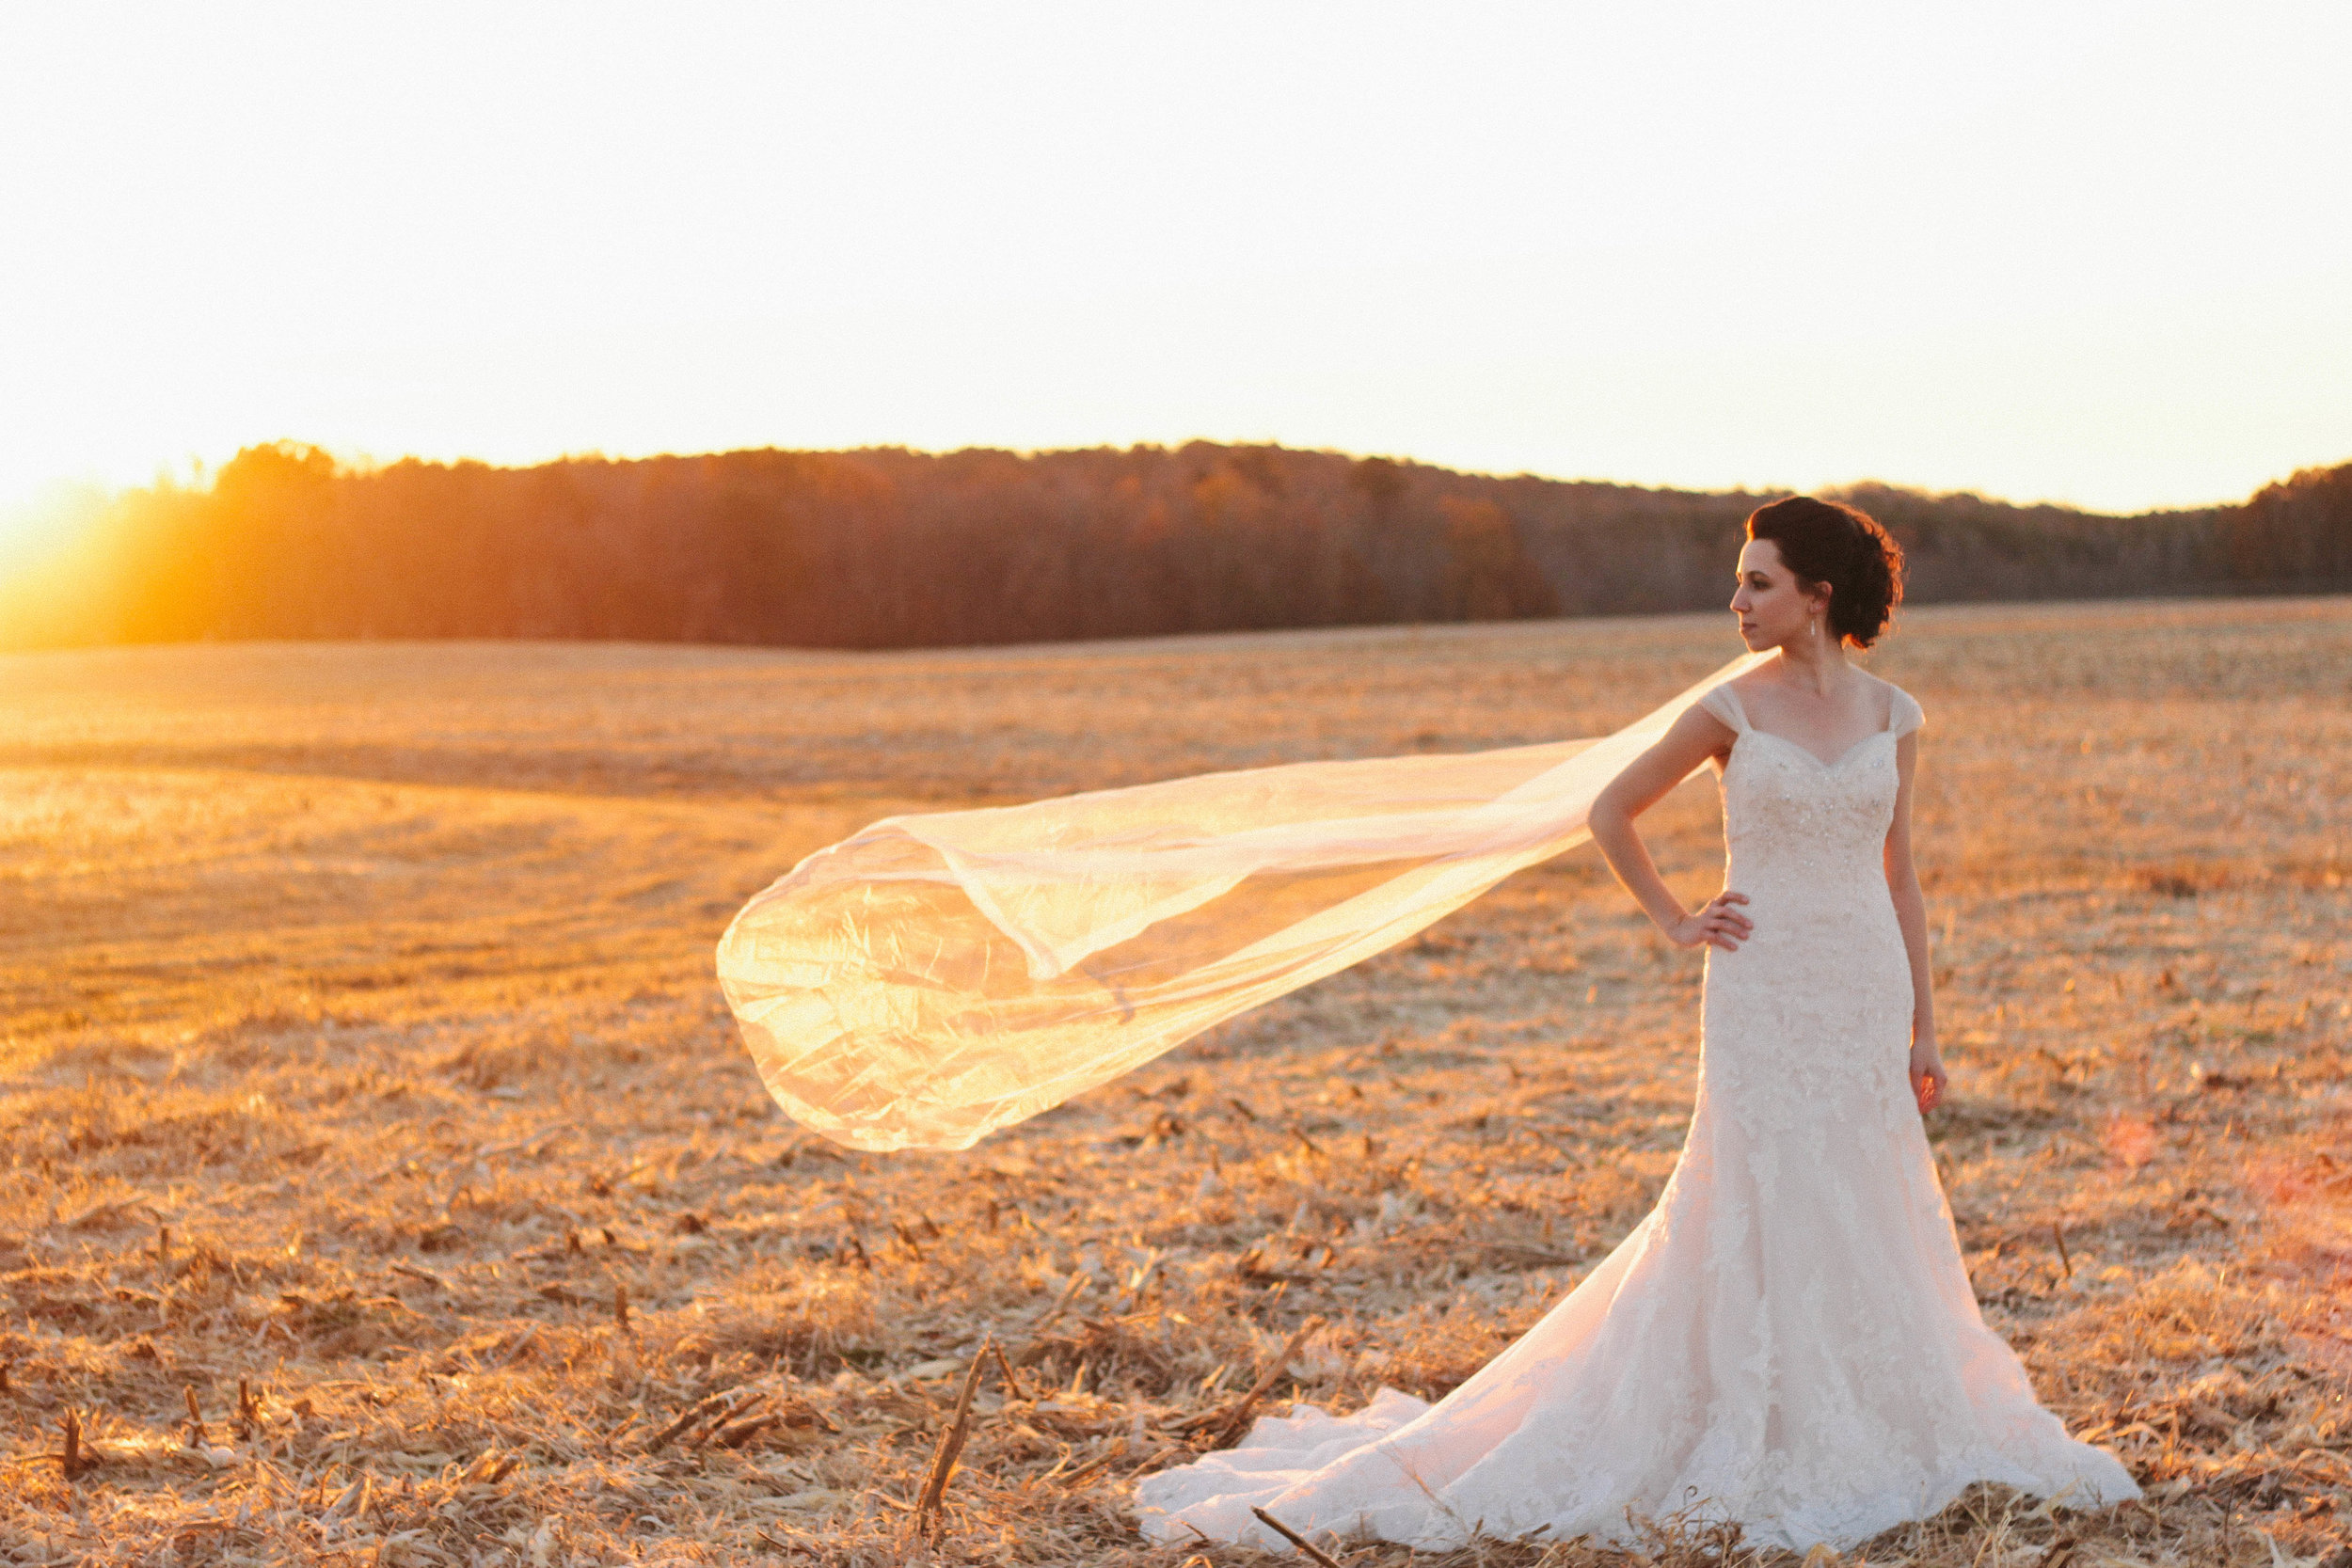 We interrupt this Very Serious Bridal Shoot to bring you a slice of reality. When you don't have a breeze that is juuuuust right, you have your little-sister-turned-assistant to make the veil do the floaty thing and then run out of the frame as fast as she can.